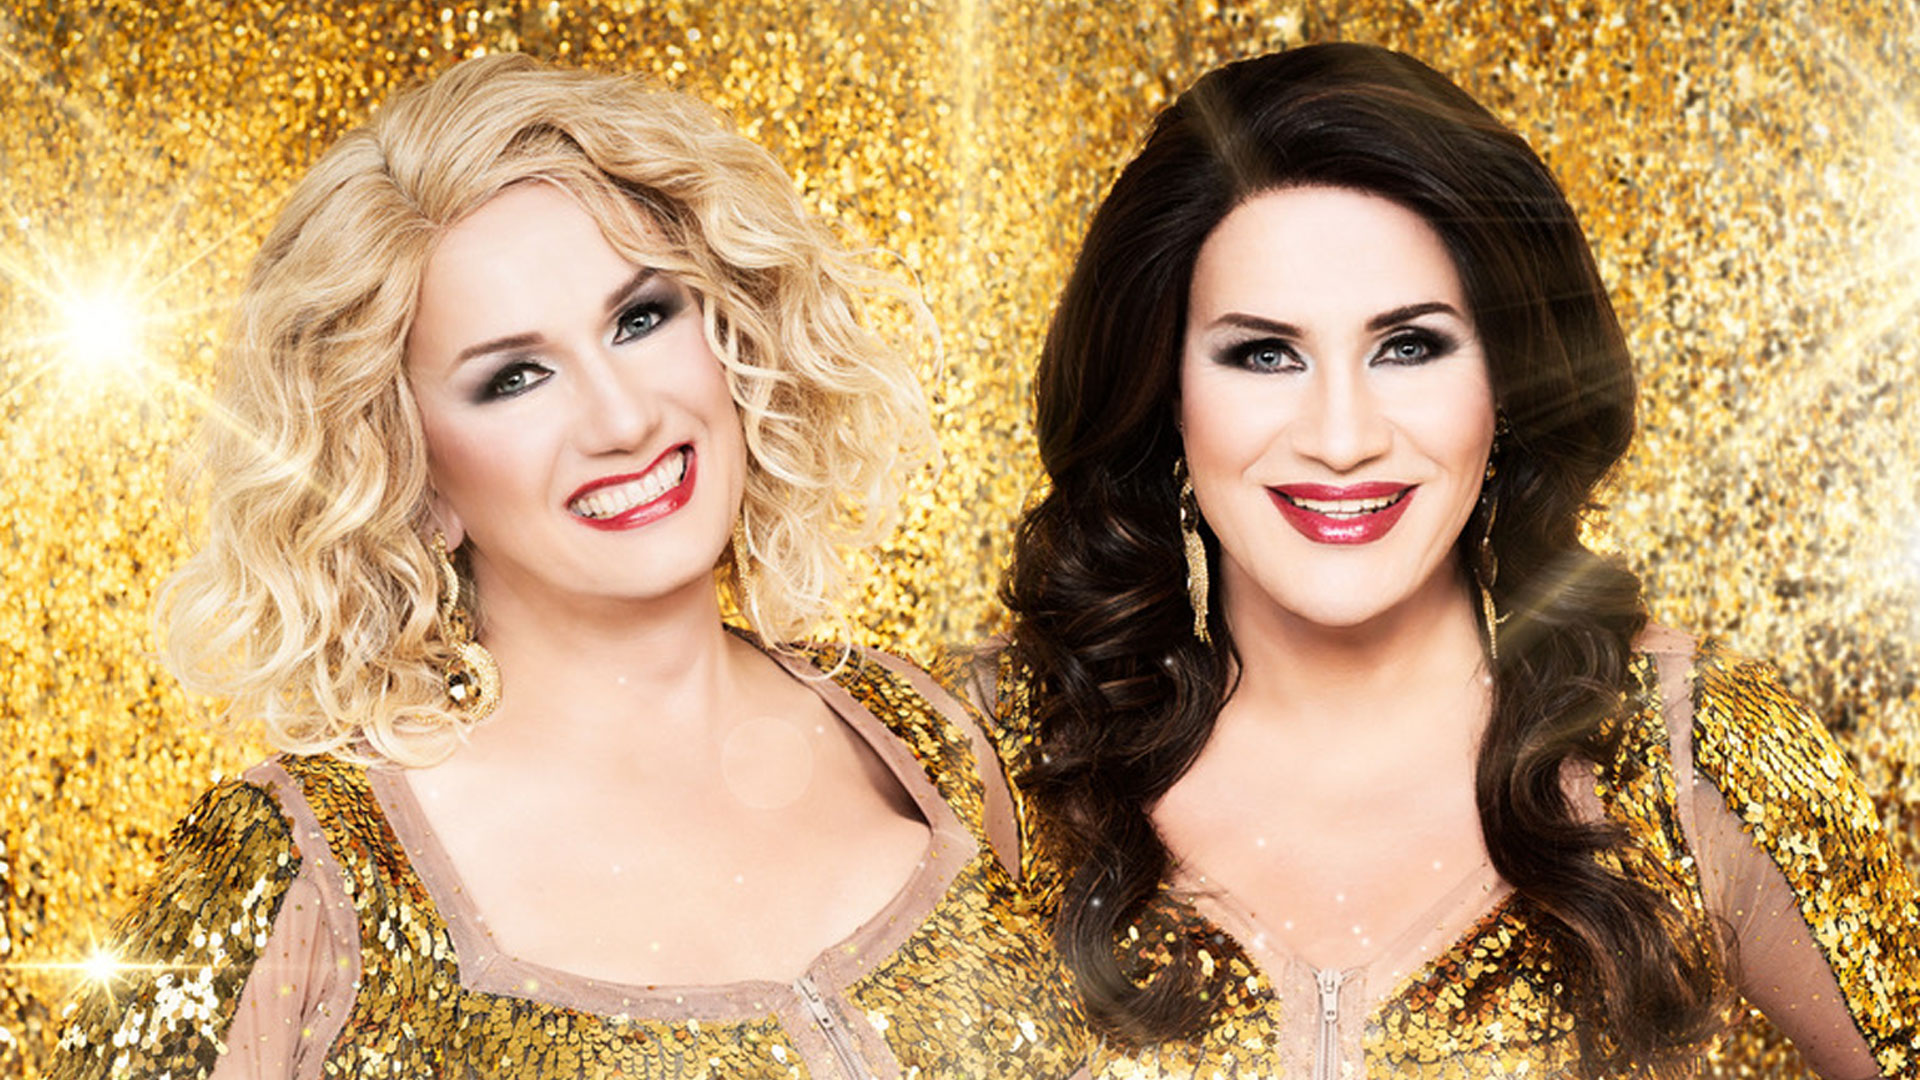 Forever Divas! by ShoWhat - Golden Years of Pop to 5.12.2019 klo 19.00